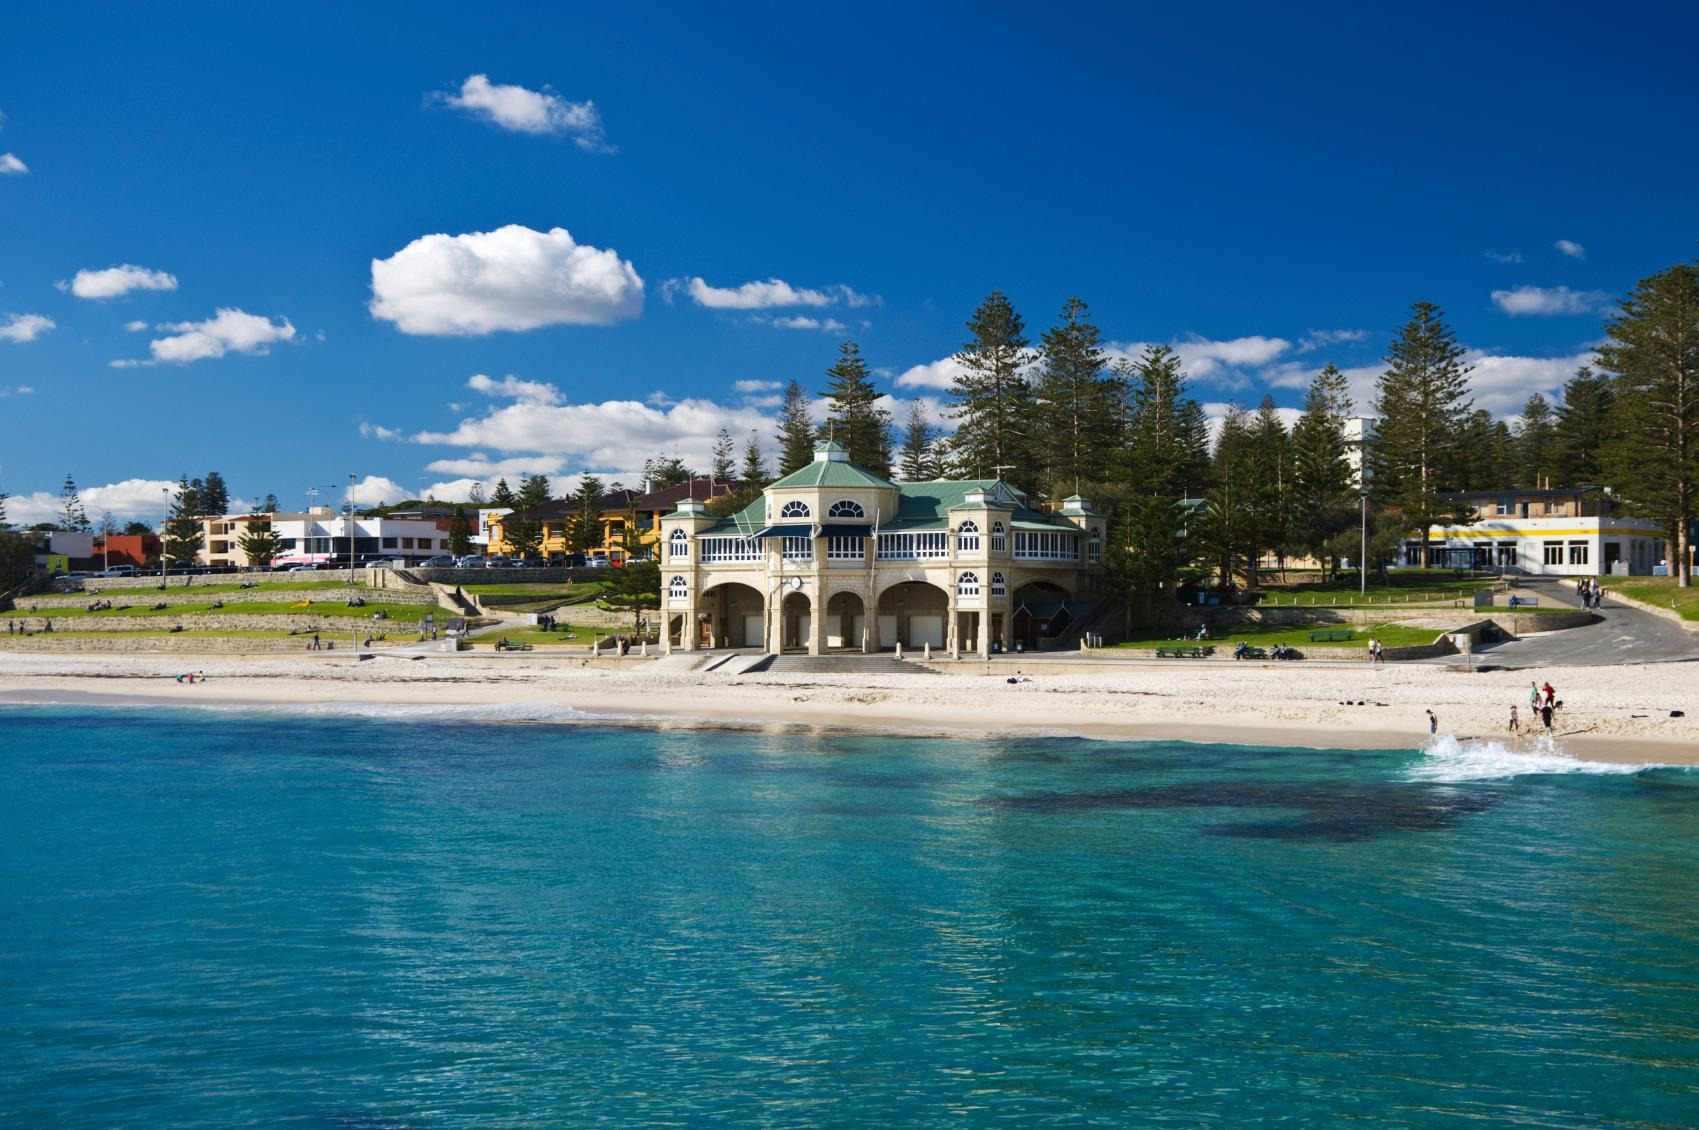 How to Spend 1 Day in Perth